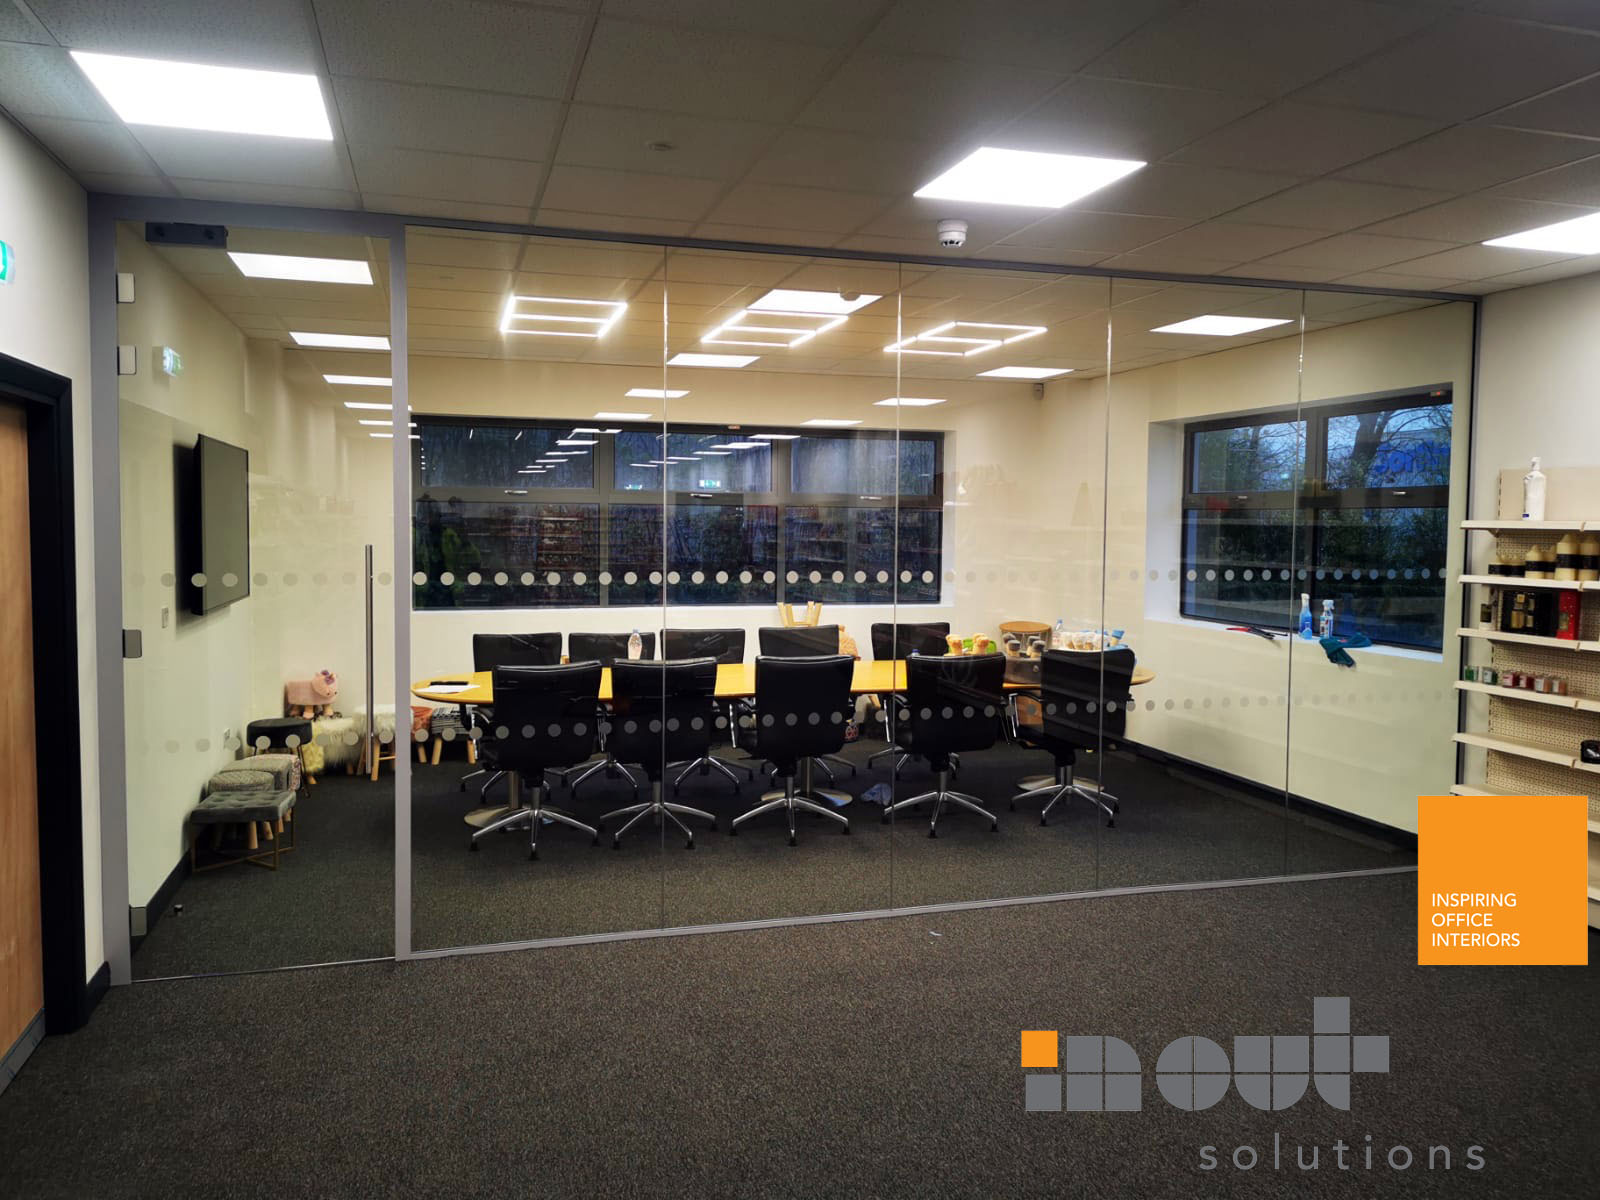 glass office partitions warrington glass walls glass partitioning glass dividers office partitioning office partitions